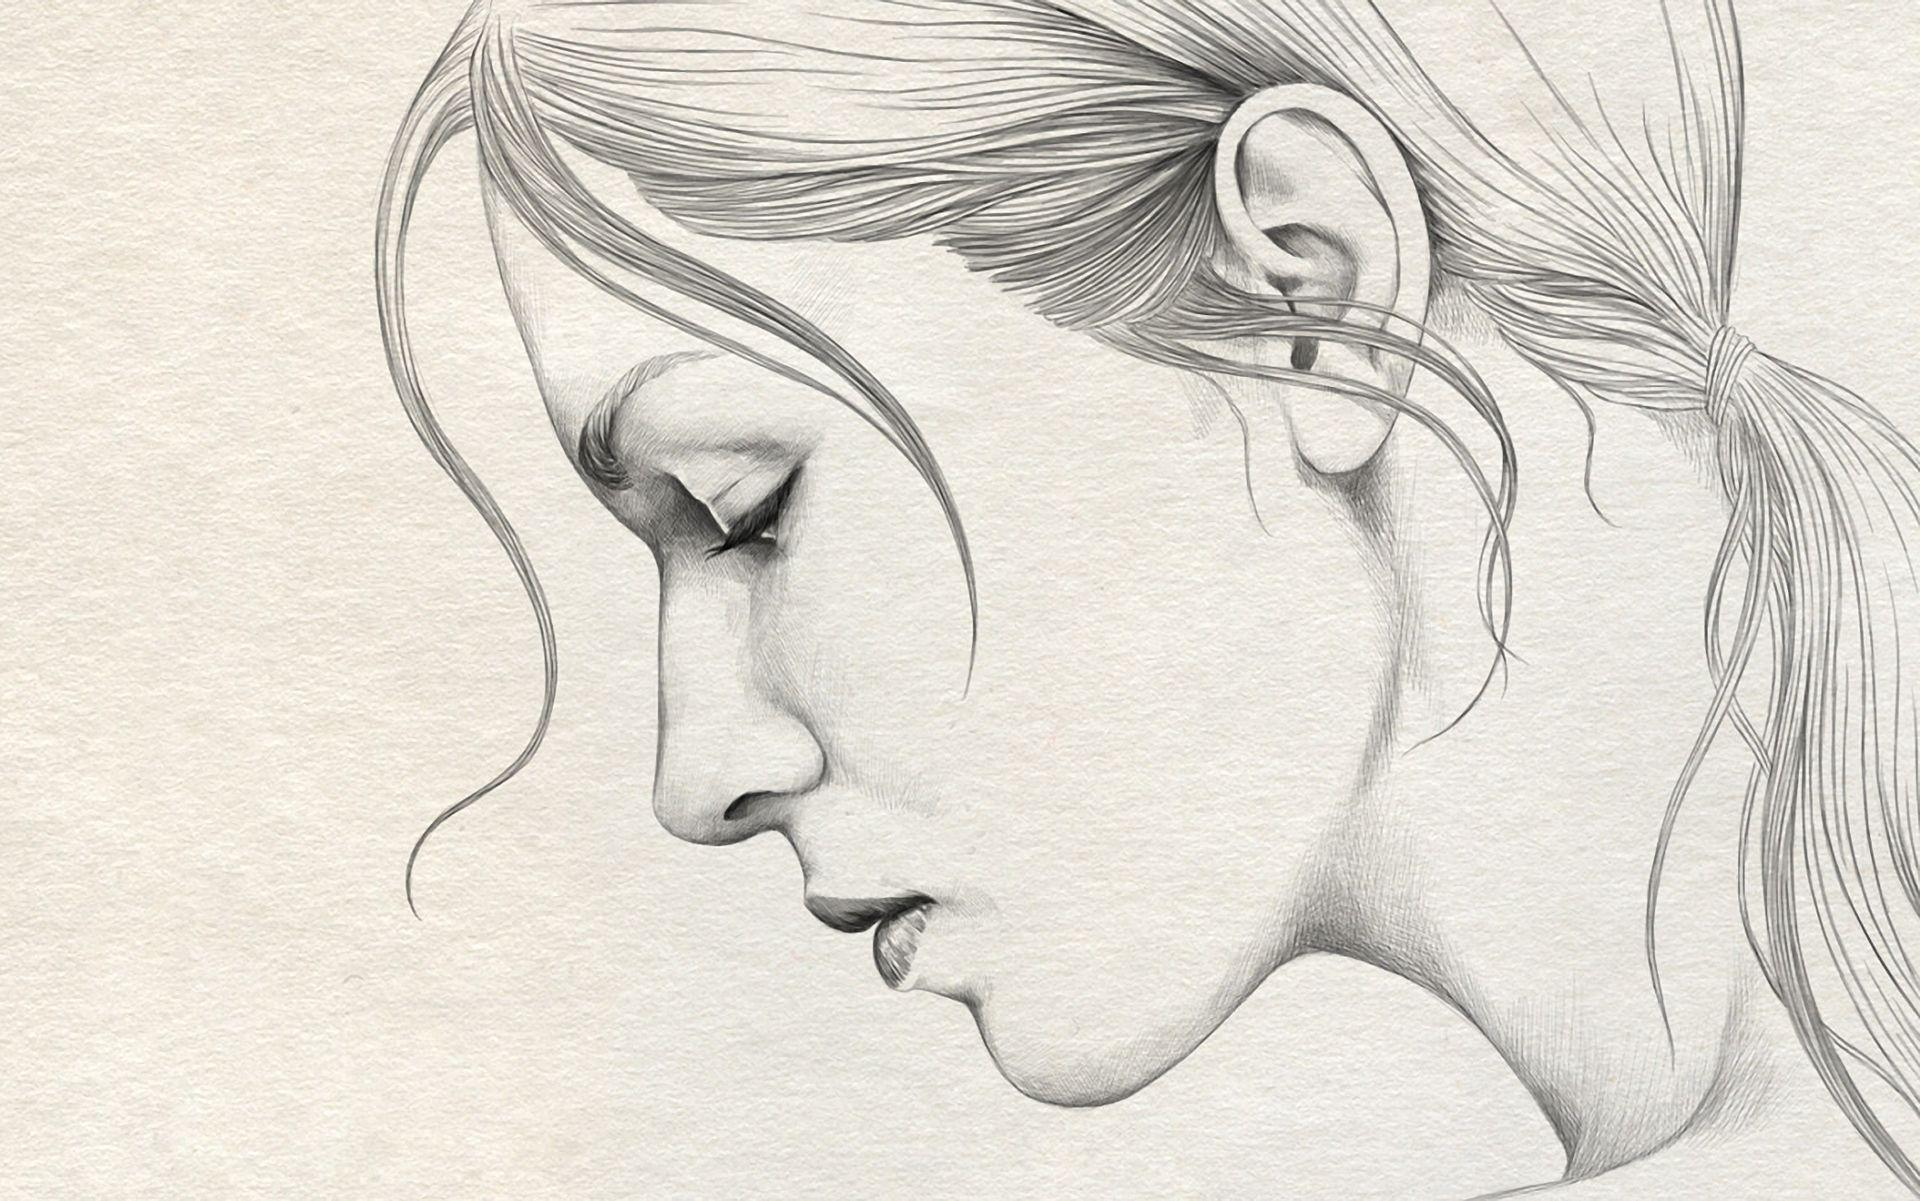 Pencil drawings wallpapers wonderful hdq live pencil drawings download